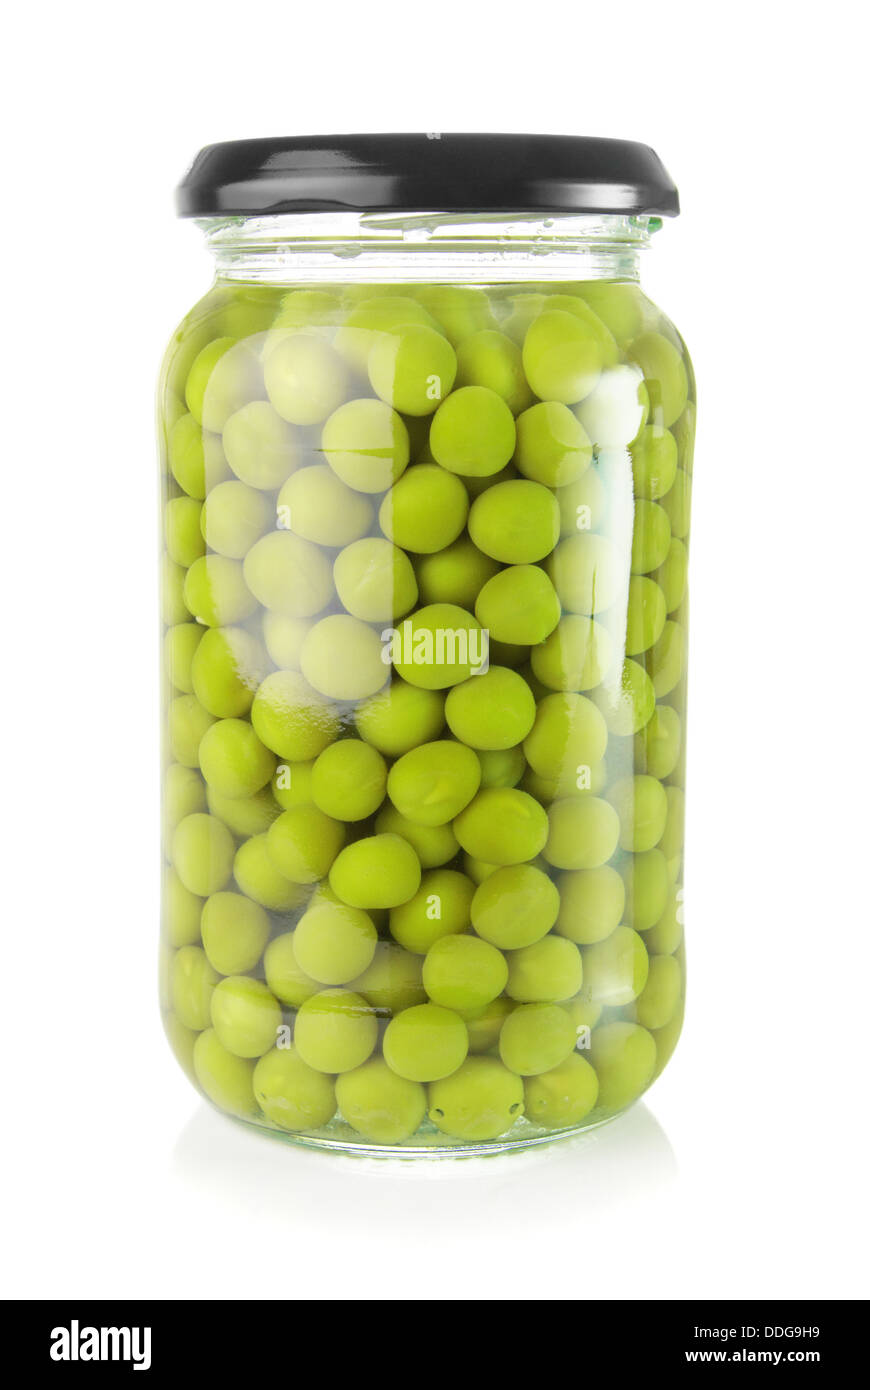 Preserved green peas in a glass jar - Stock Image